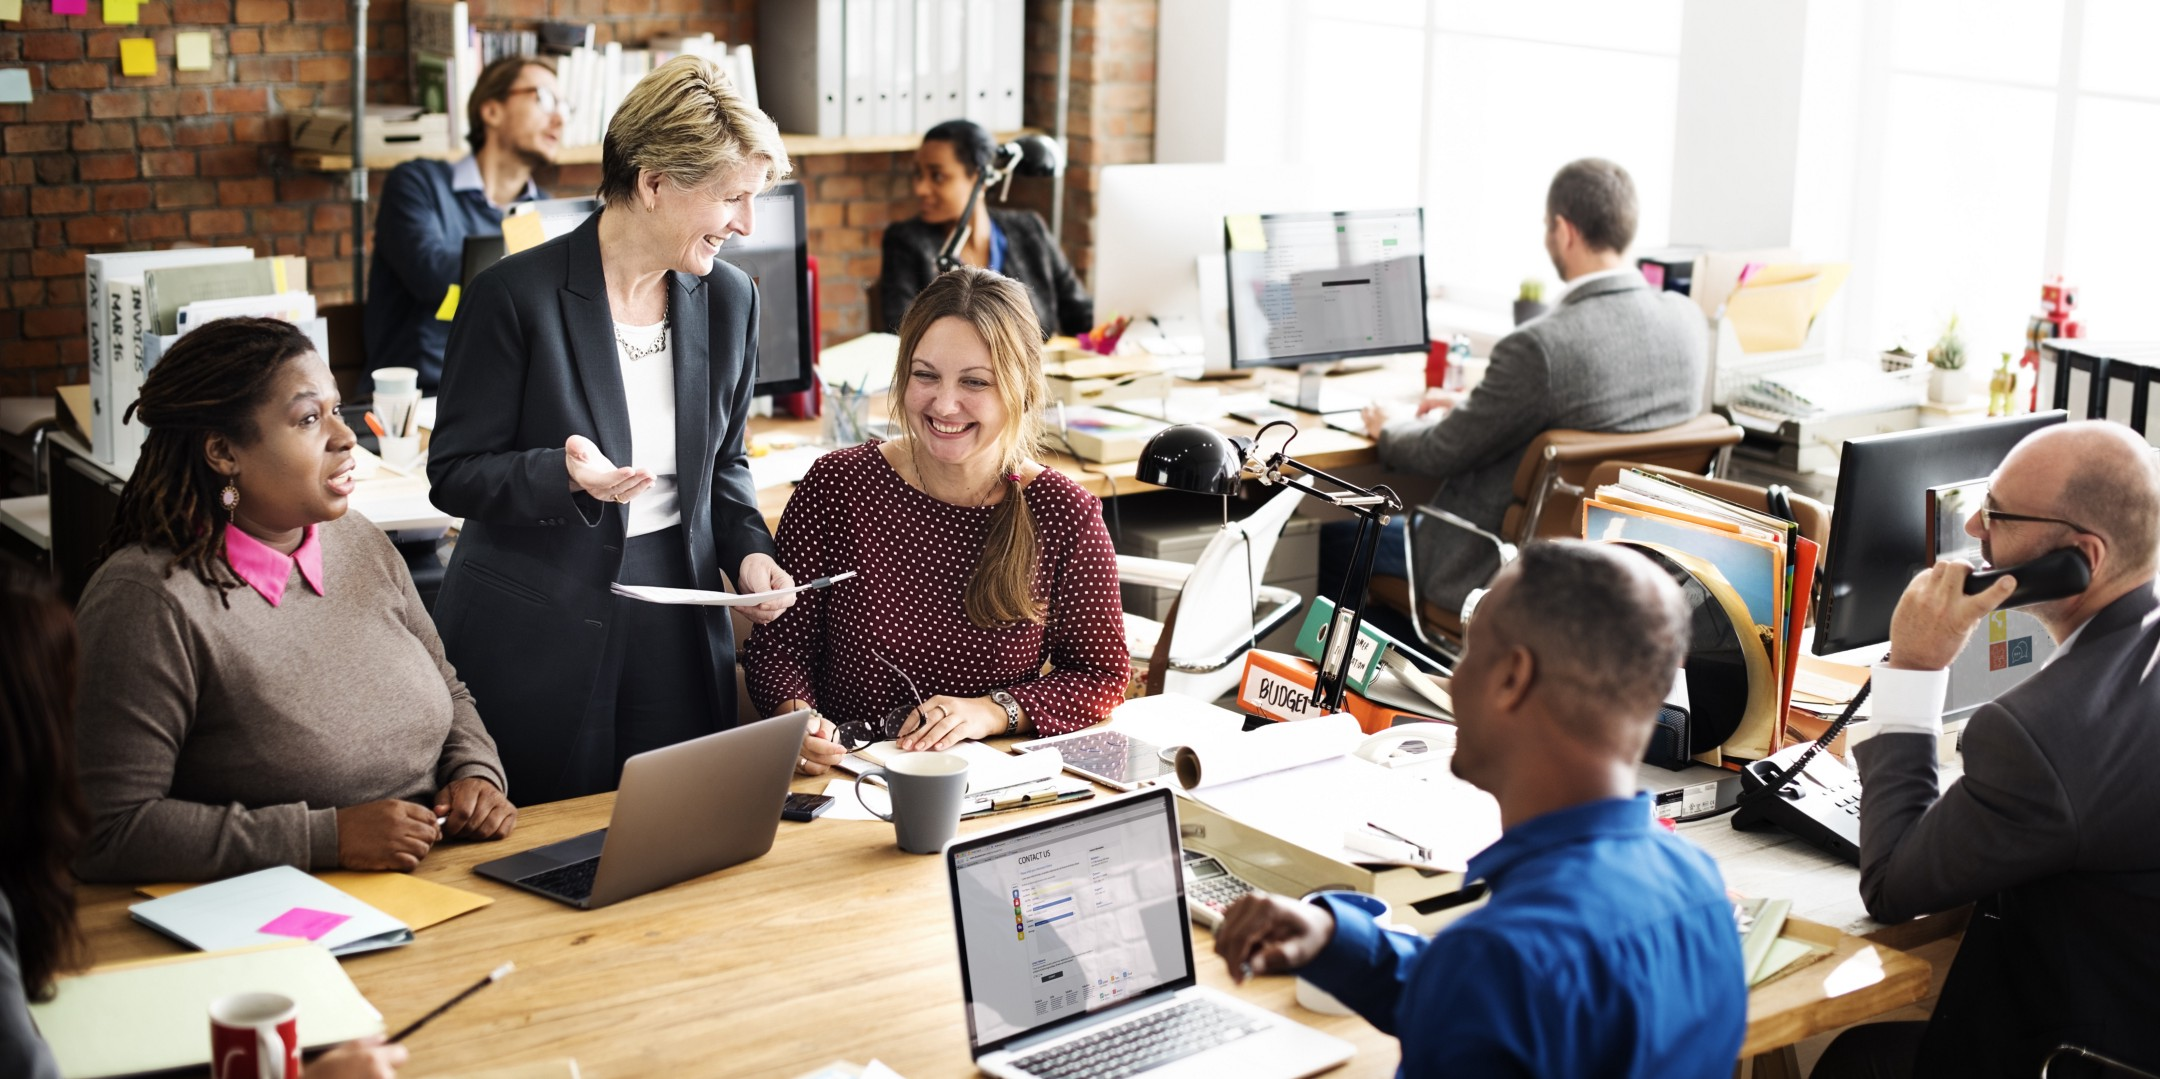 Work-Life Imbalance: Why Financial Services Companies Should Care about their Employees' Financial Health